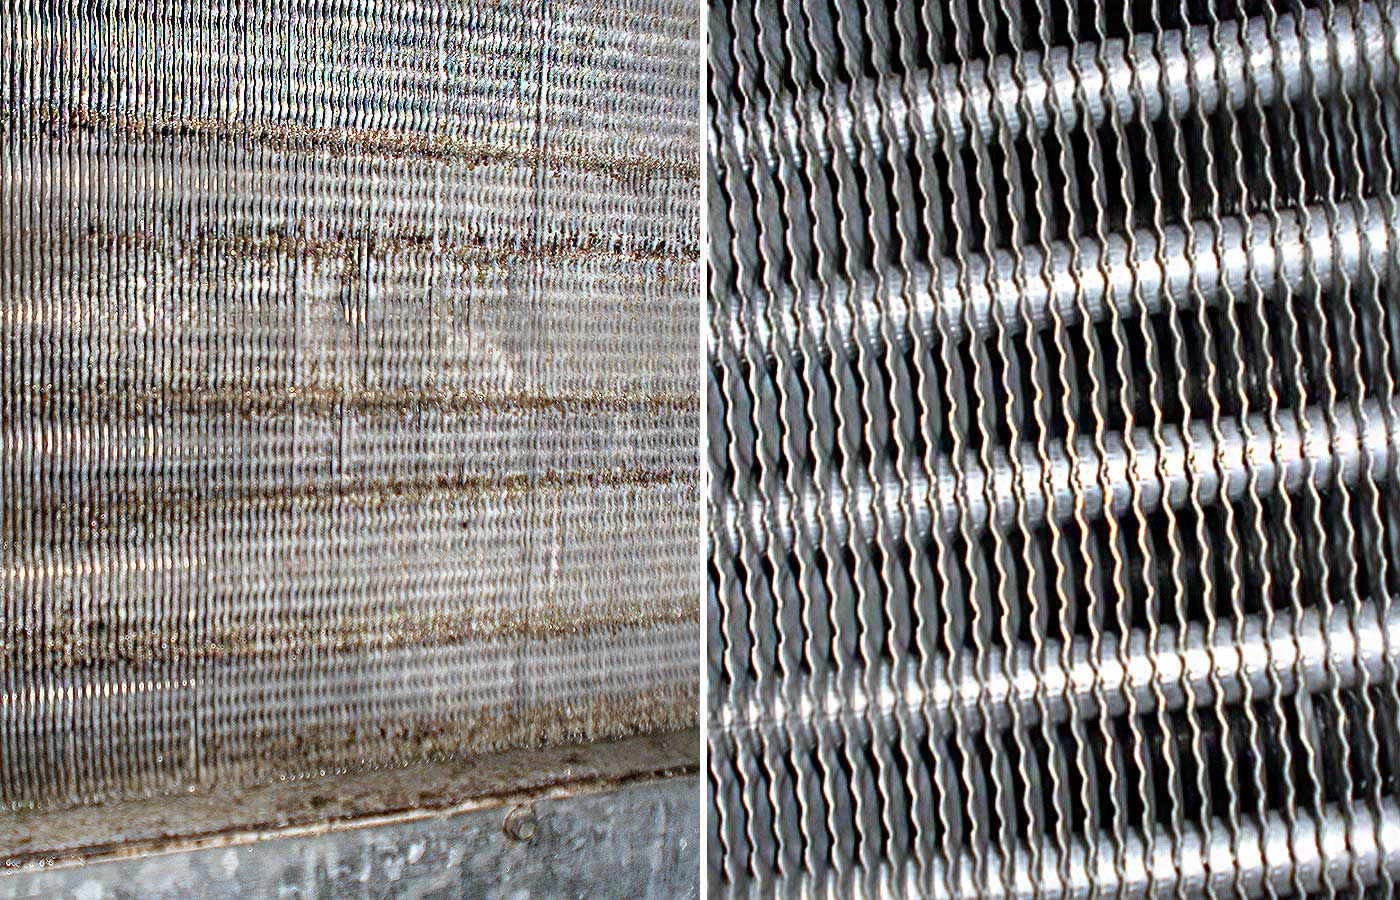 Ac Coil Cleaning Why Is It Important To Keep Air